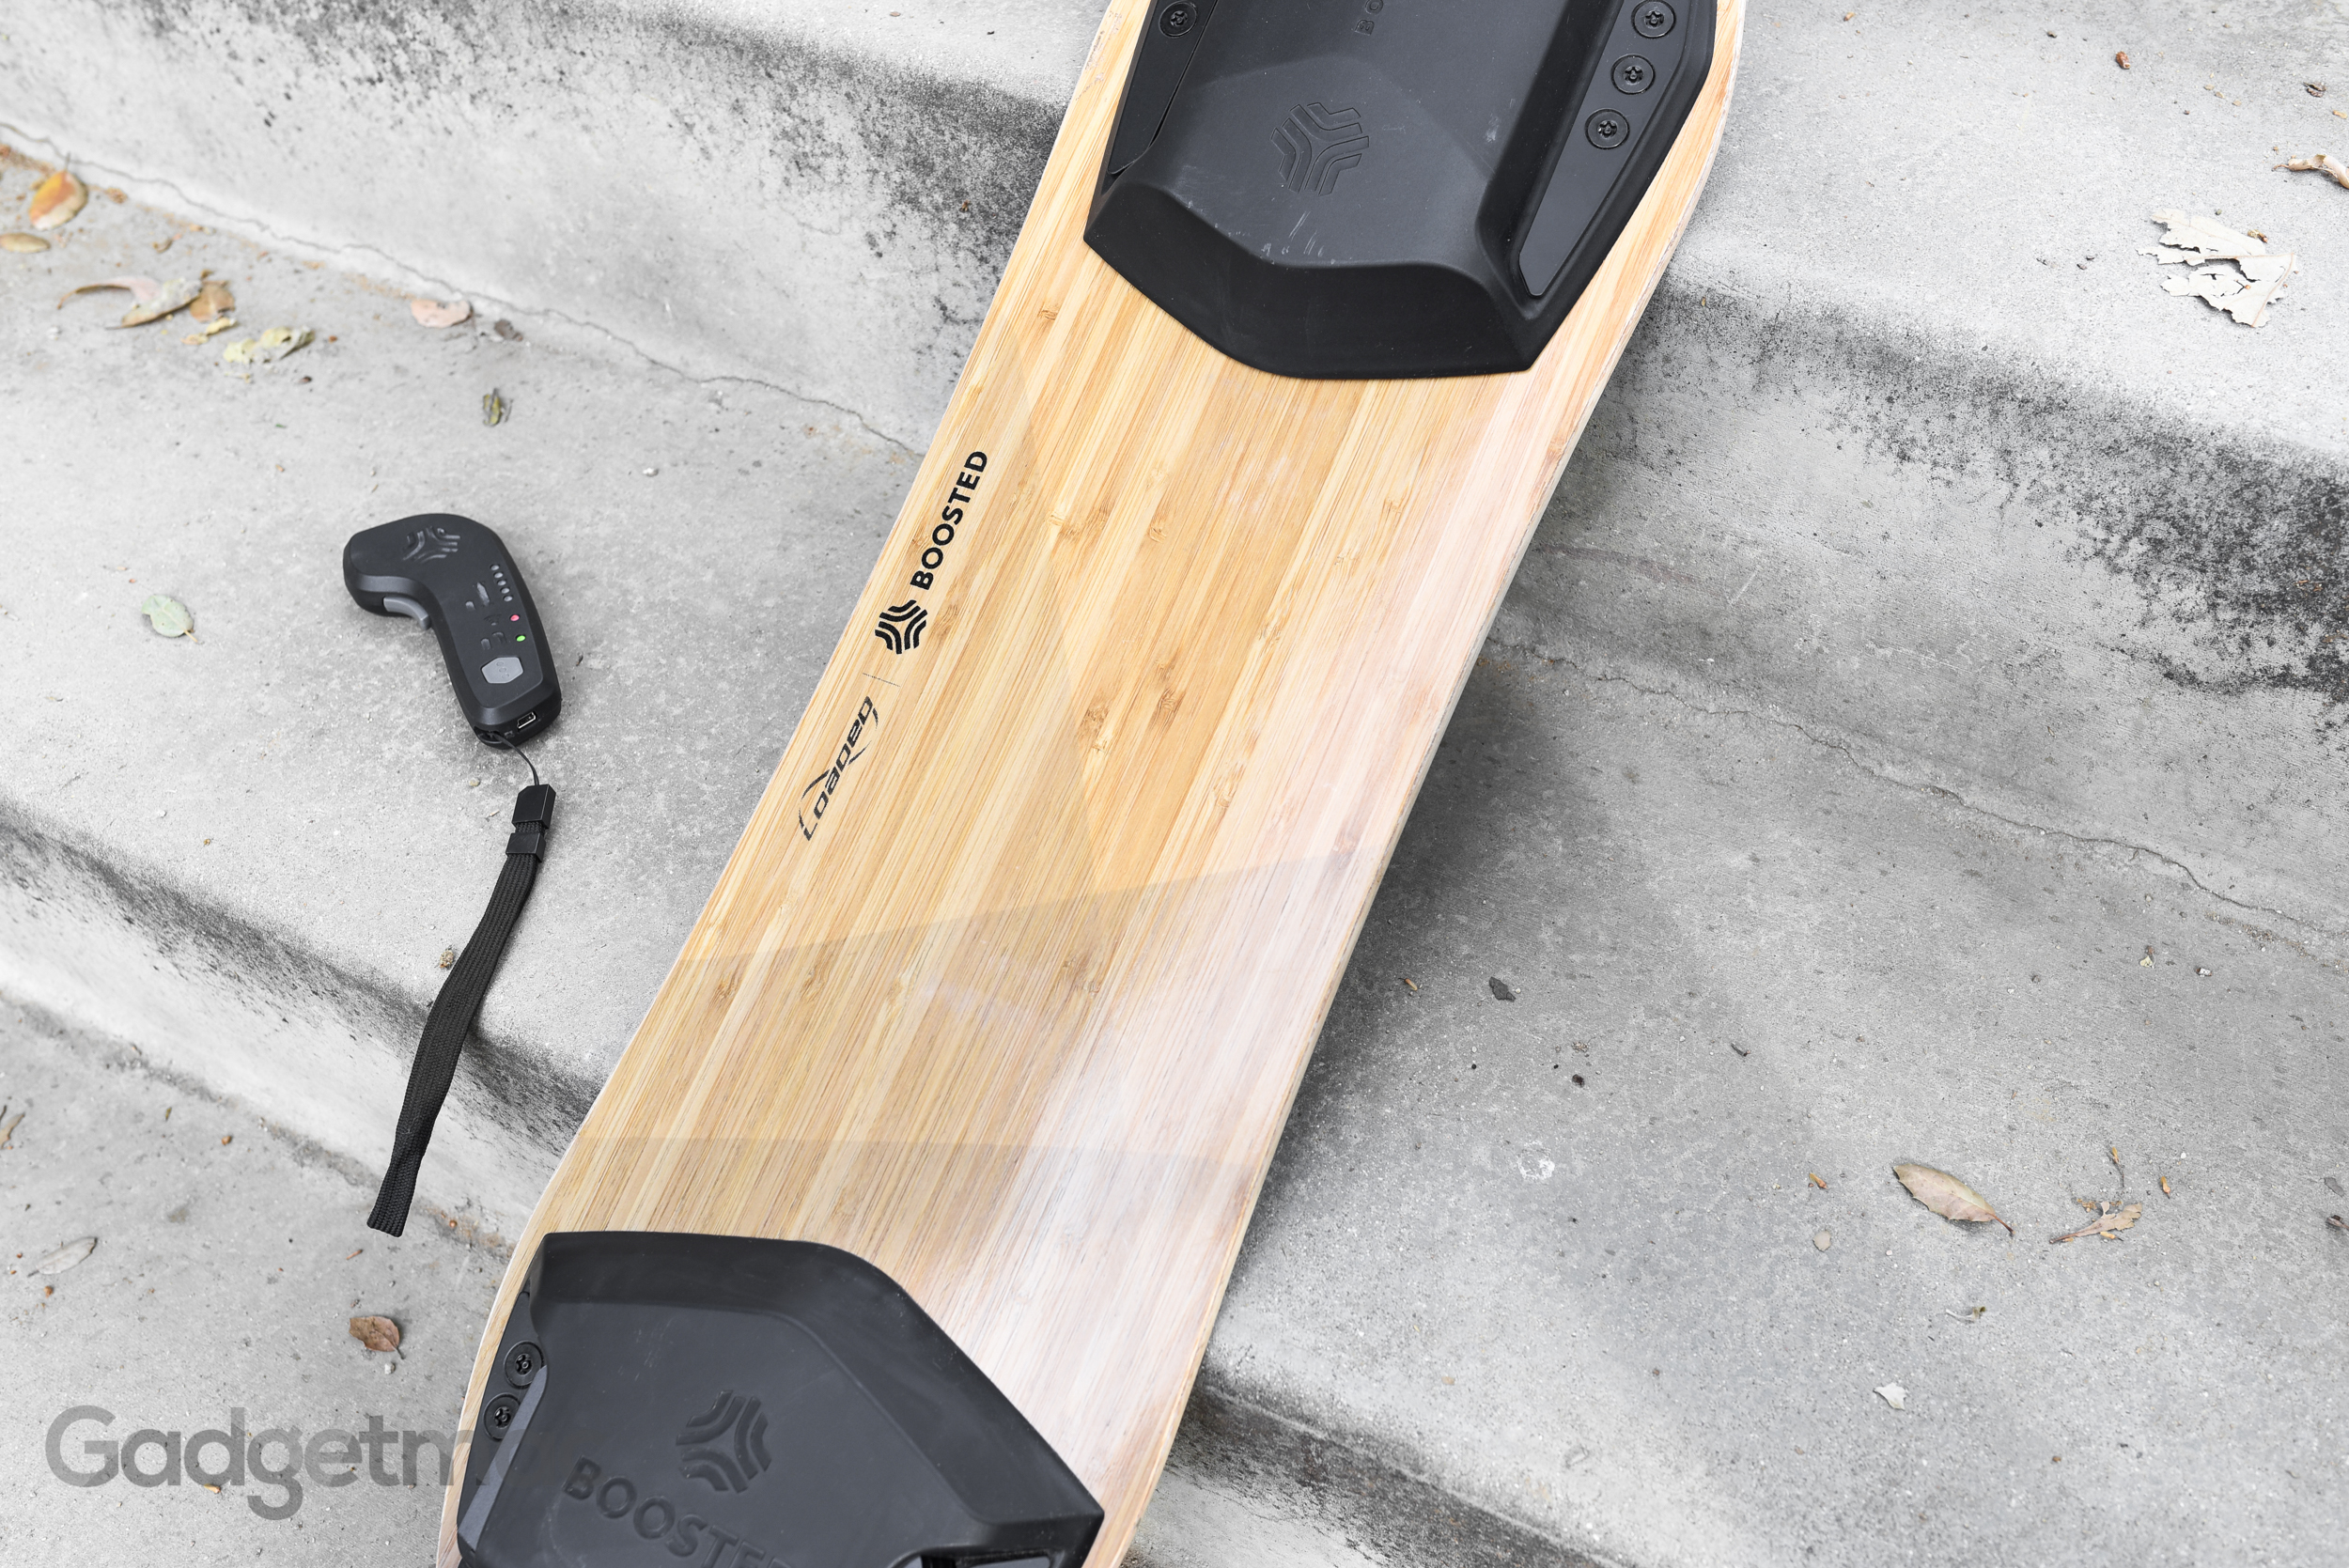 boosted-board-loaded-bamboo-deck.jpg